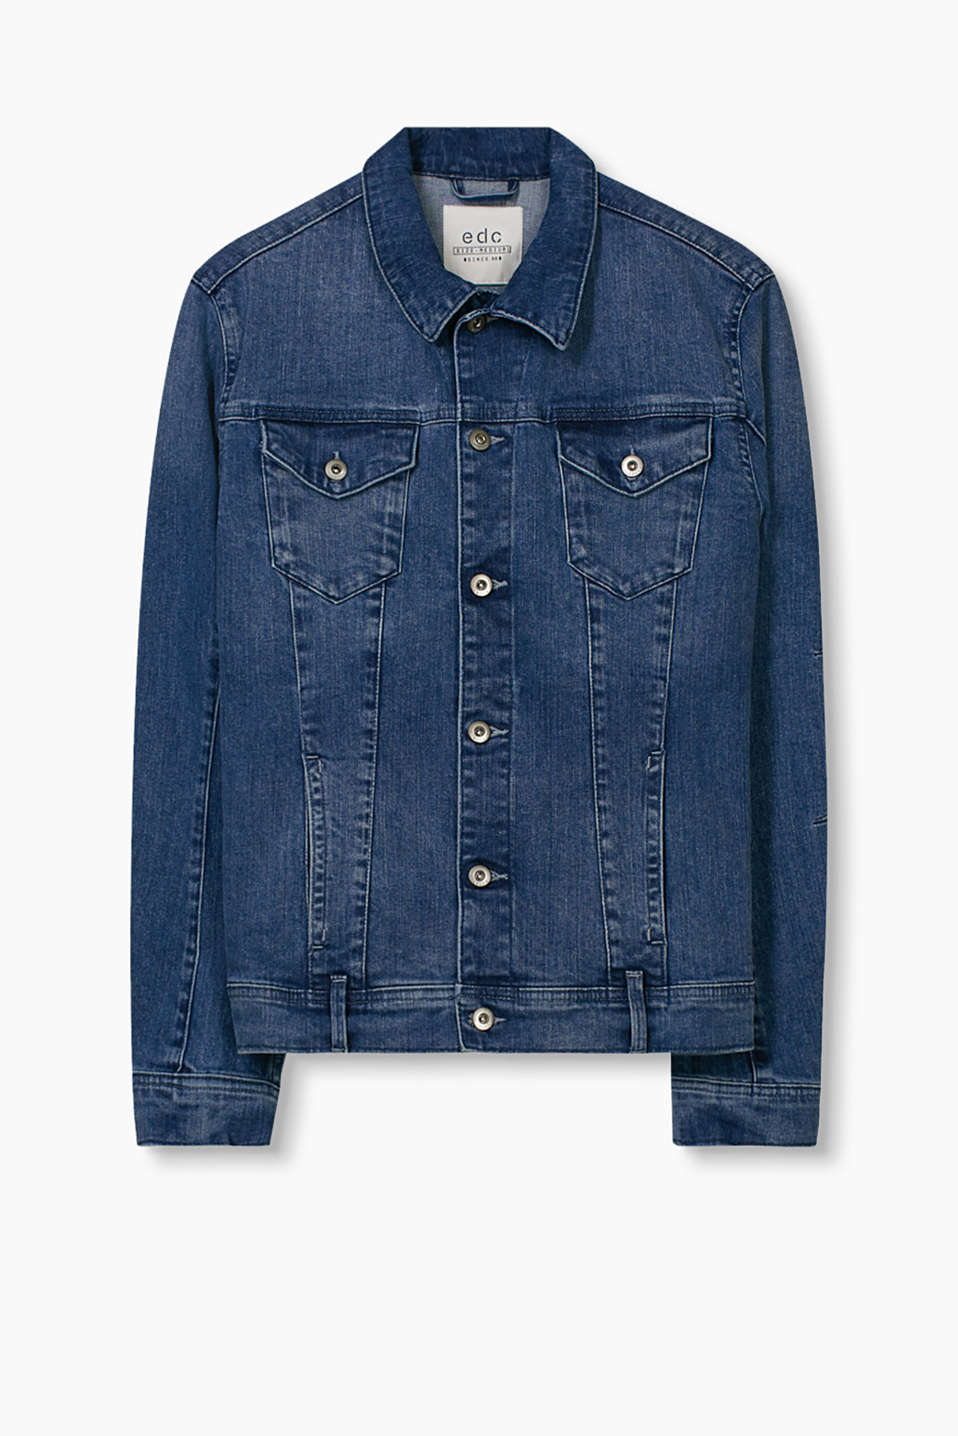 Authentic denim jacket with breast pockets and a subtle garment-washed effect